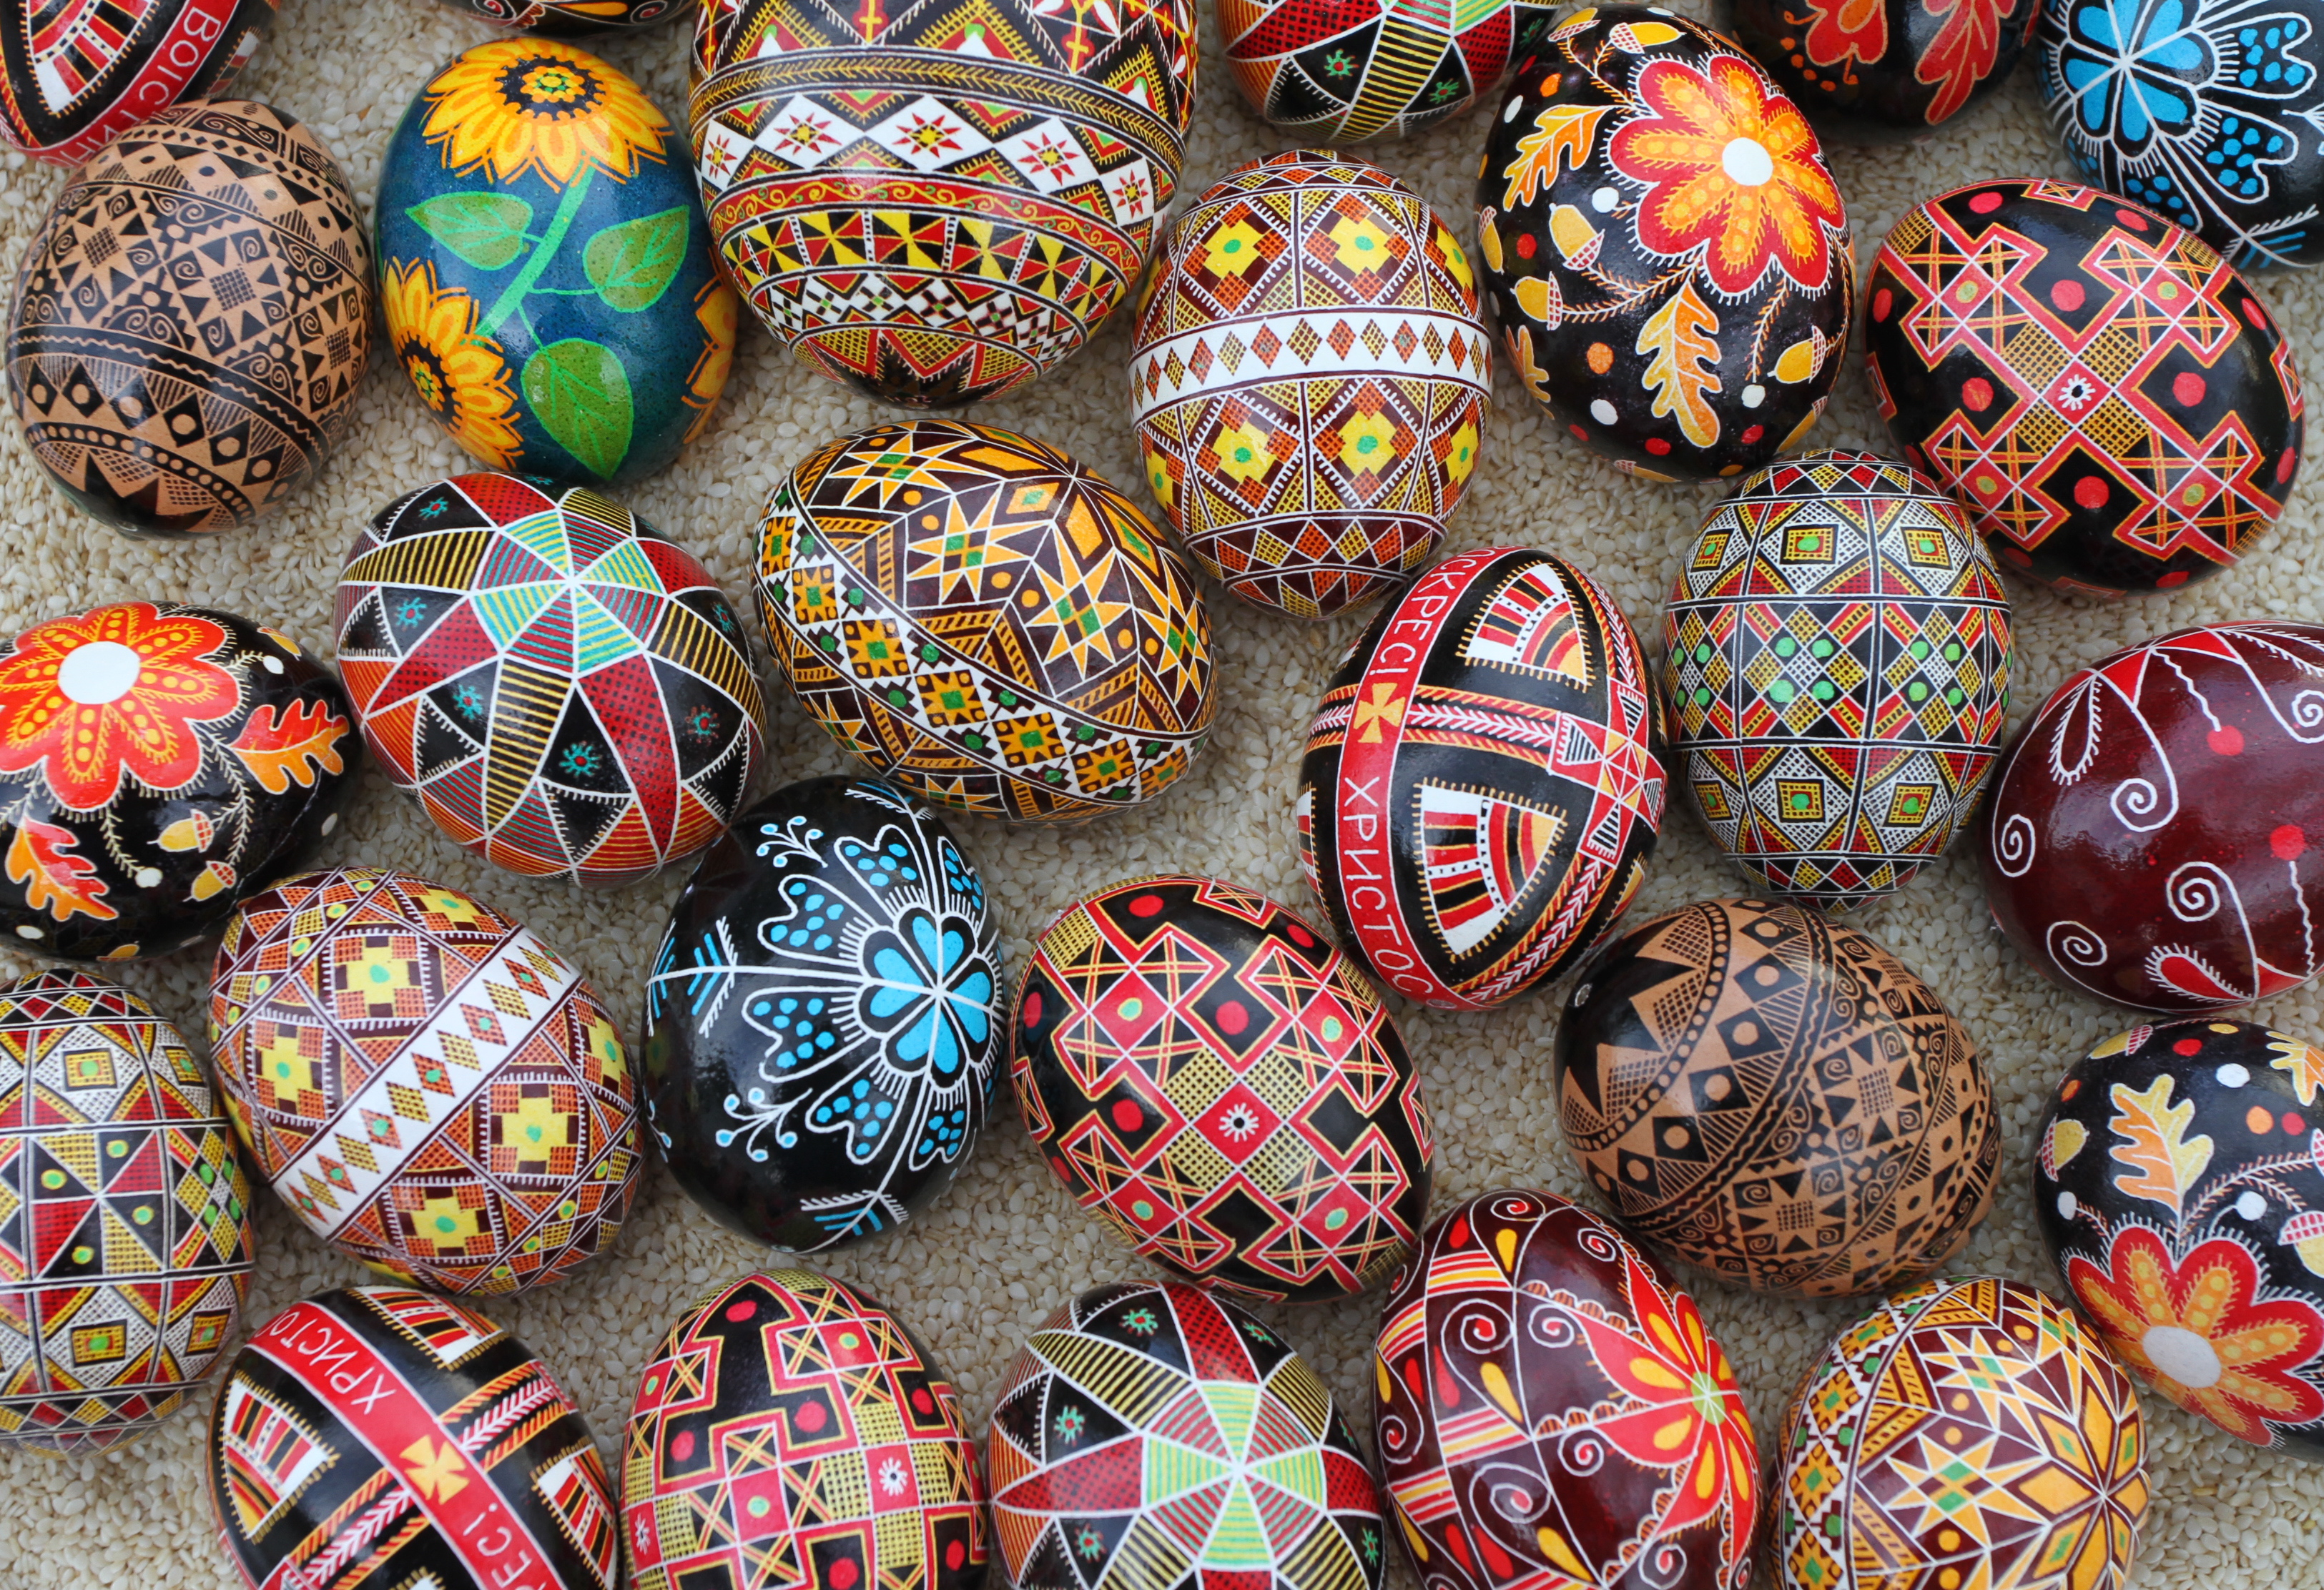 Pysanky, Pysanky: Ukrainian Easter Tradition, The Travel Bug Bite